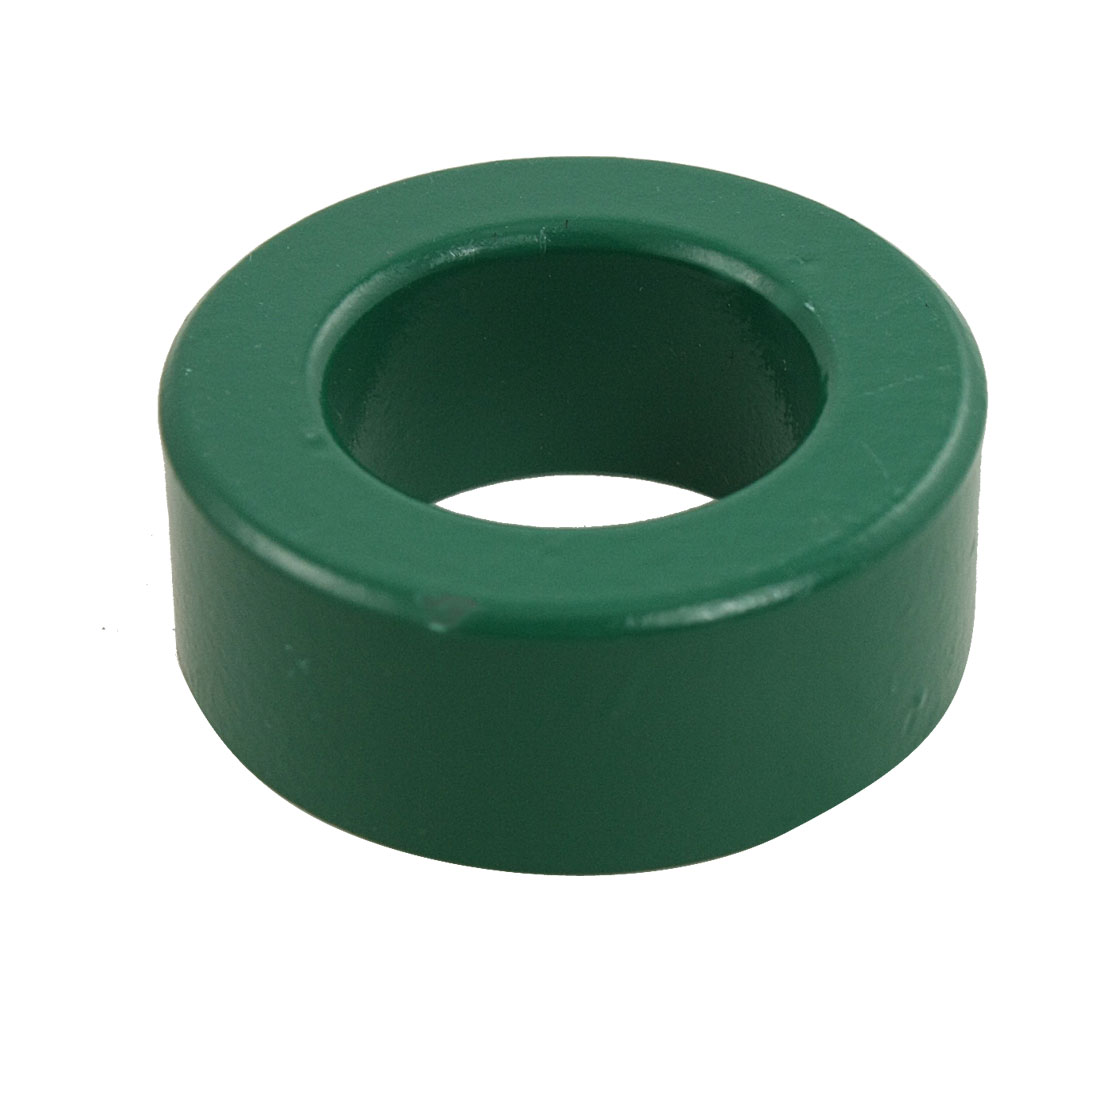 Power Transformers Round Green Toroid Ferrite Cores 63mm x 38mm x 25mm